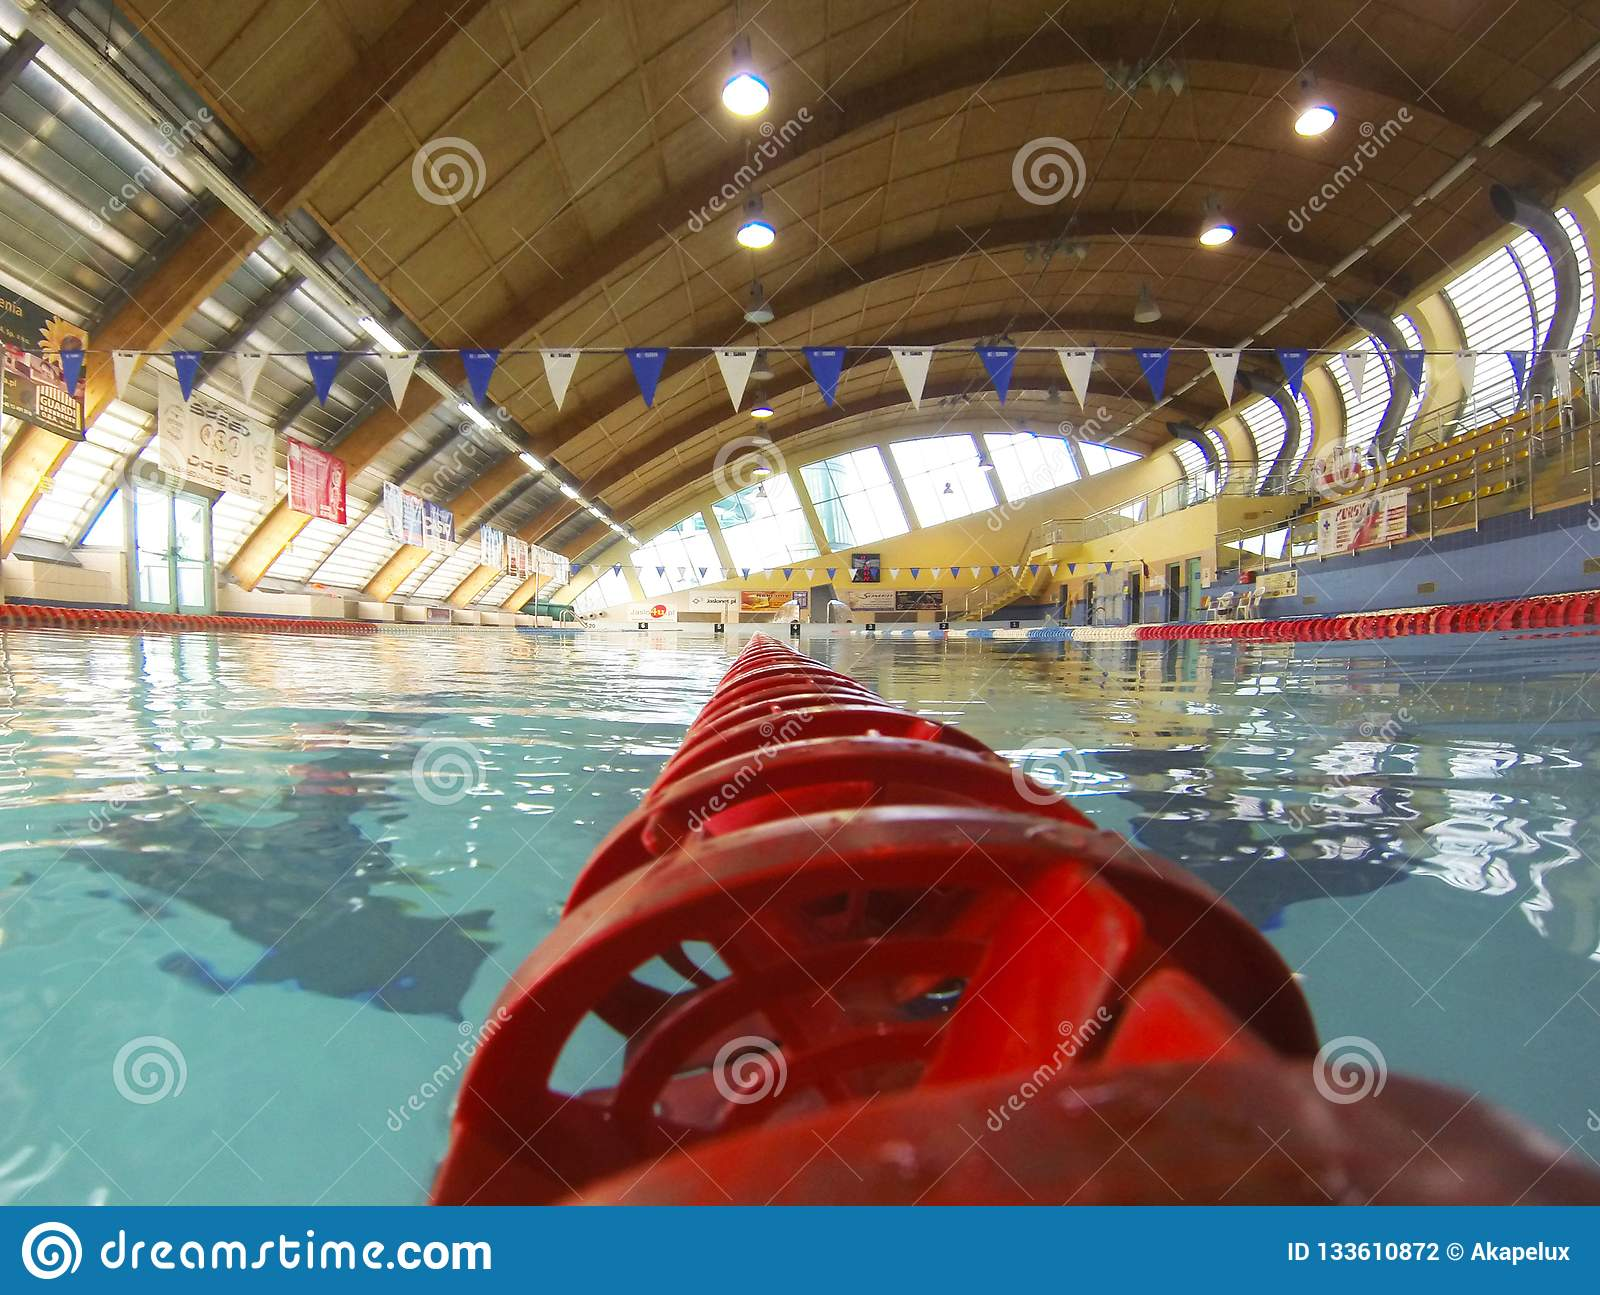 Jaslo poland 9 9 2018 the interior of the indoor - Length of swimming pool in meters ...